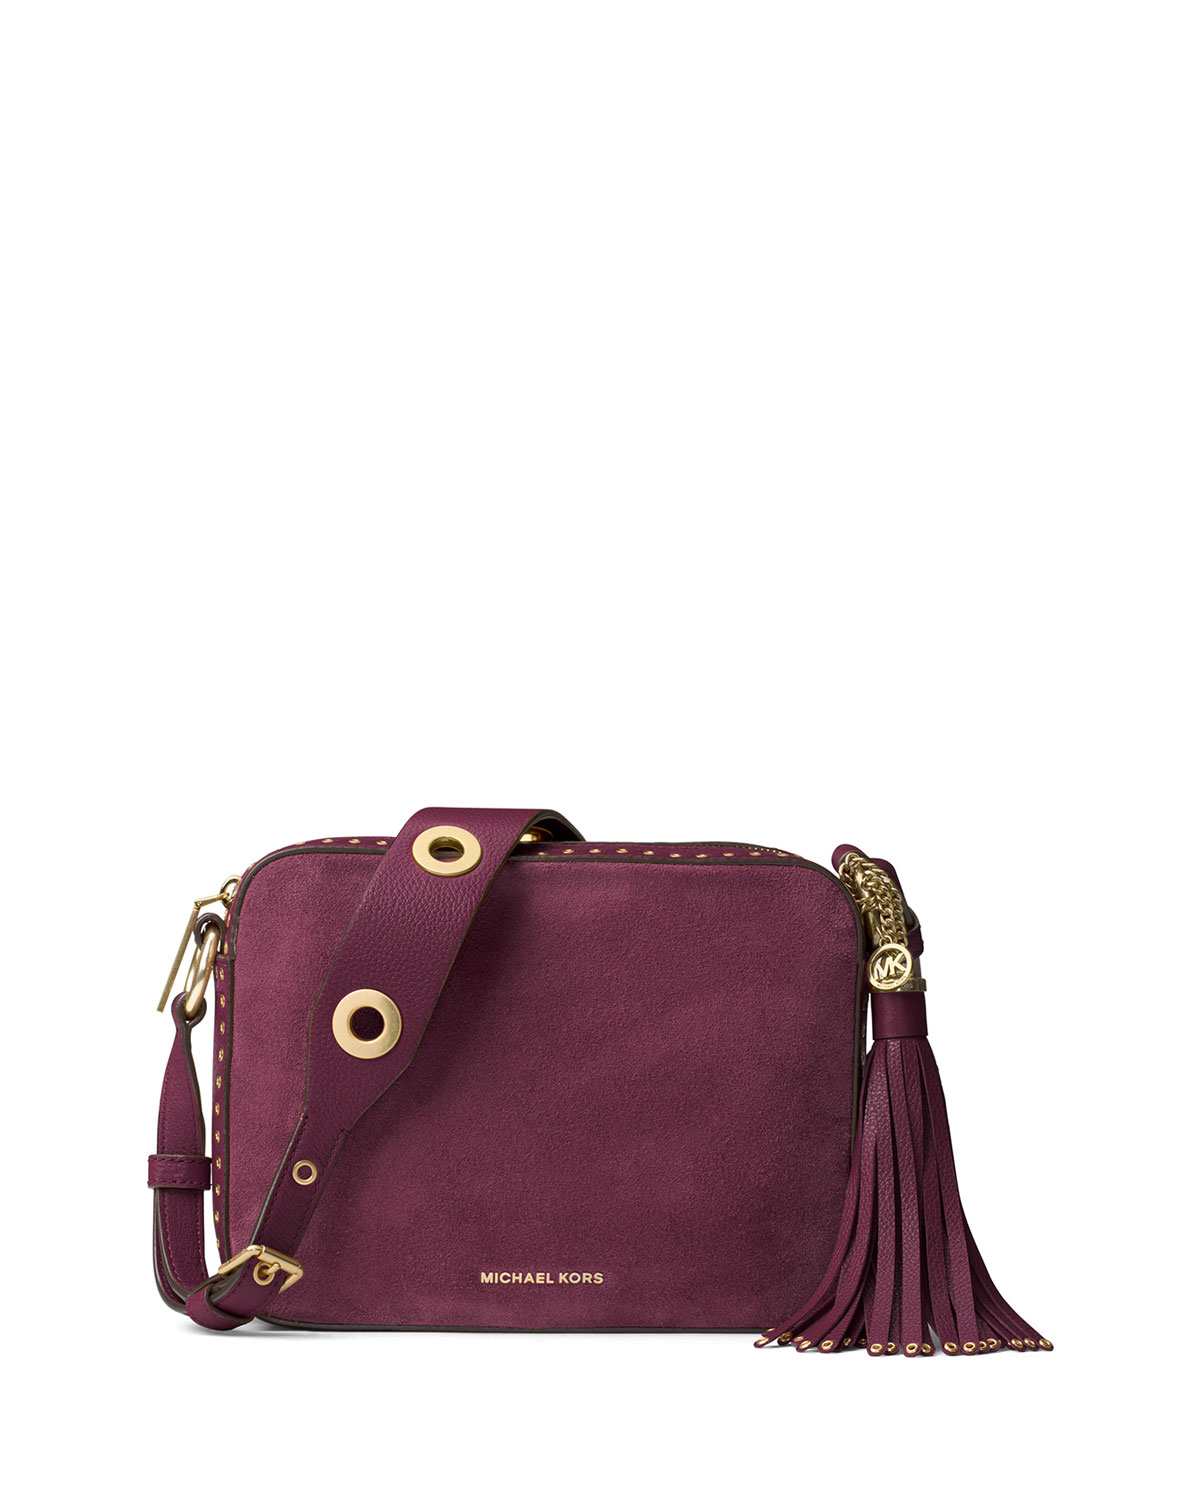 8996257e67ec MICHAEL Michael Kors Brooklyn Large Grommet Camera Bag, Plum ...